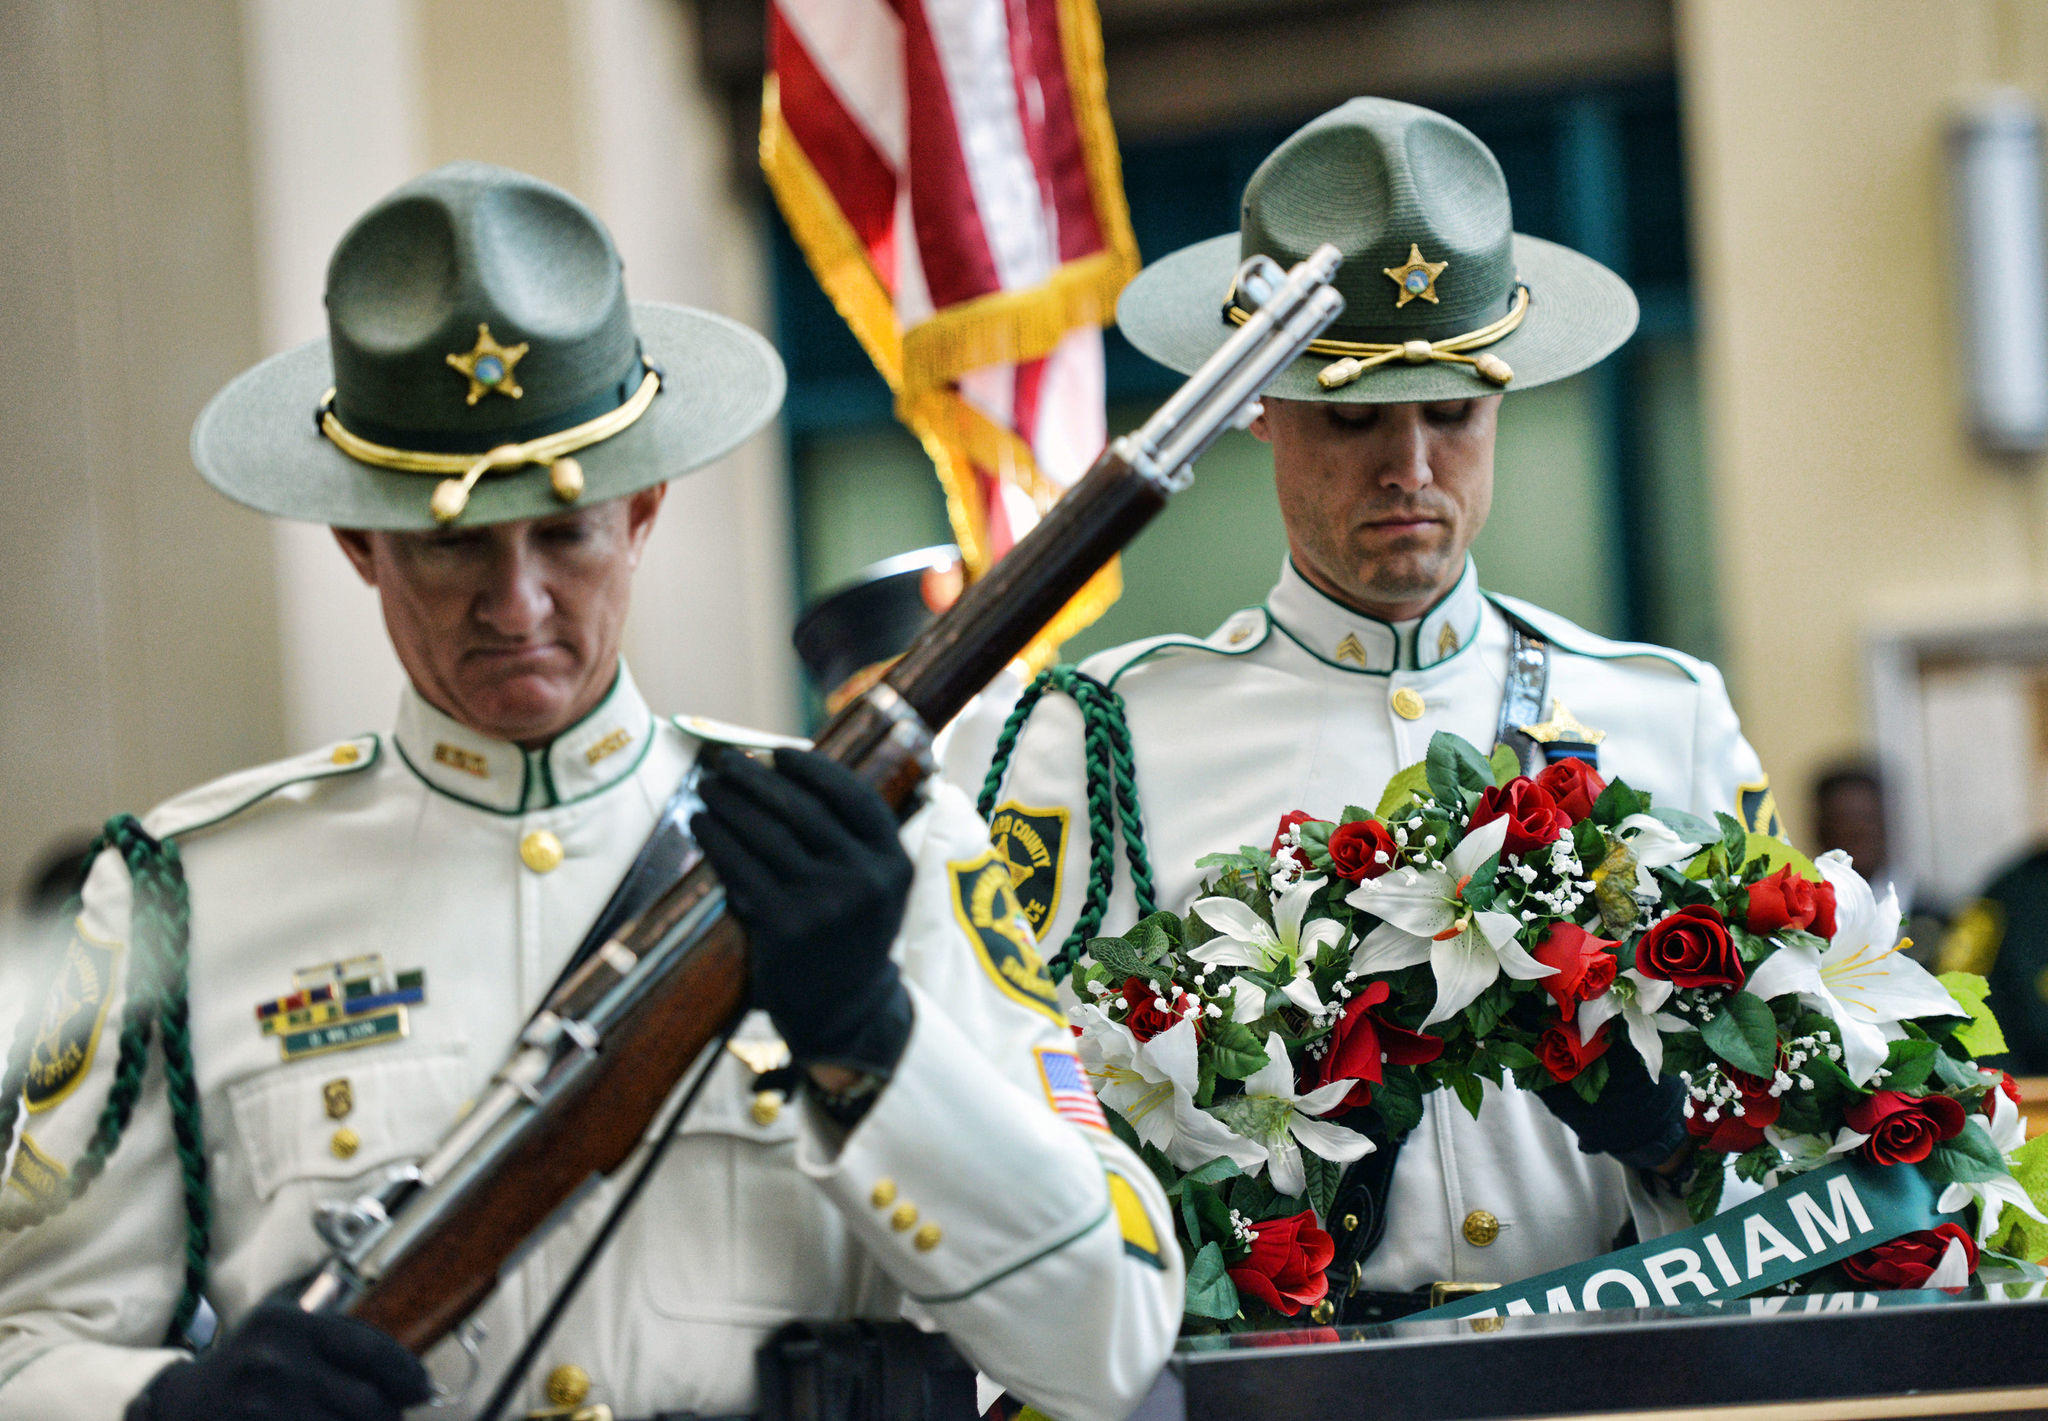 Members of the Broward sheriff's honor guard participate in a ceremony to honor fallen officers and firefighters at the Public Safety Building in Fort Lauderdale.